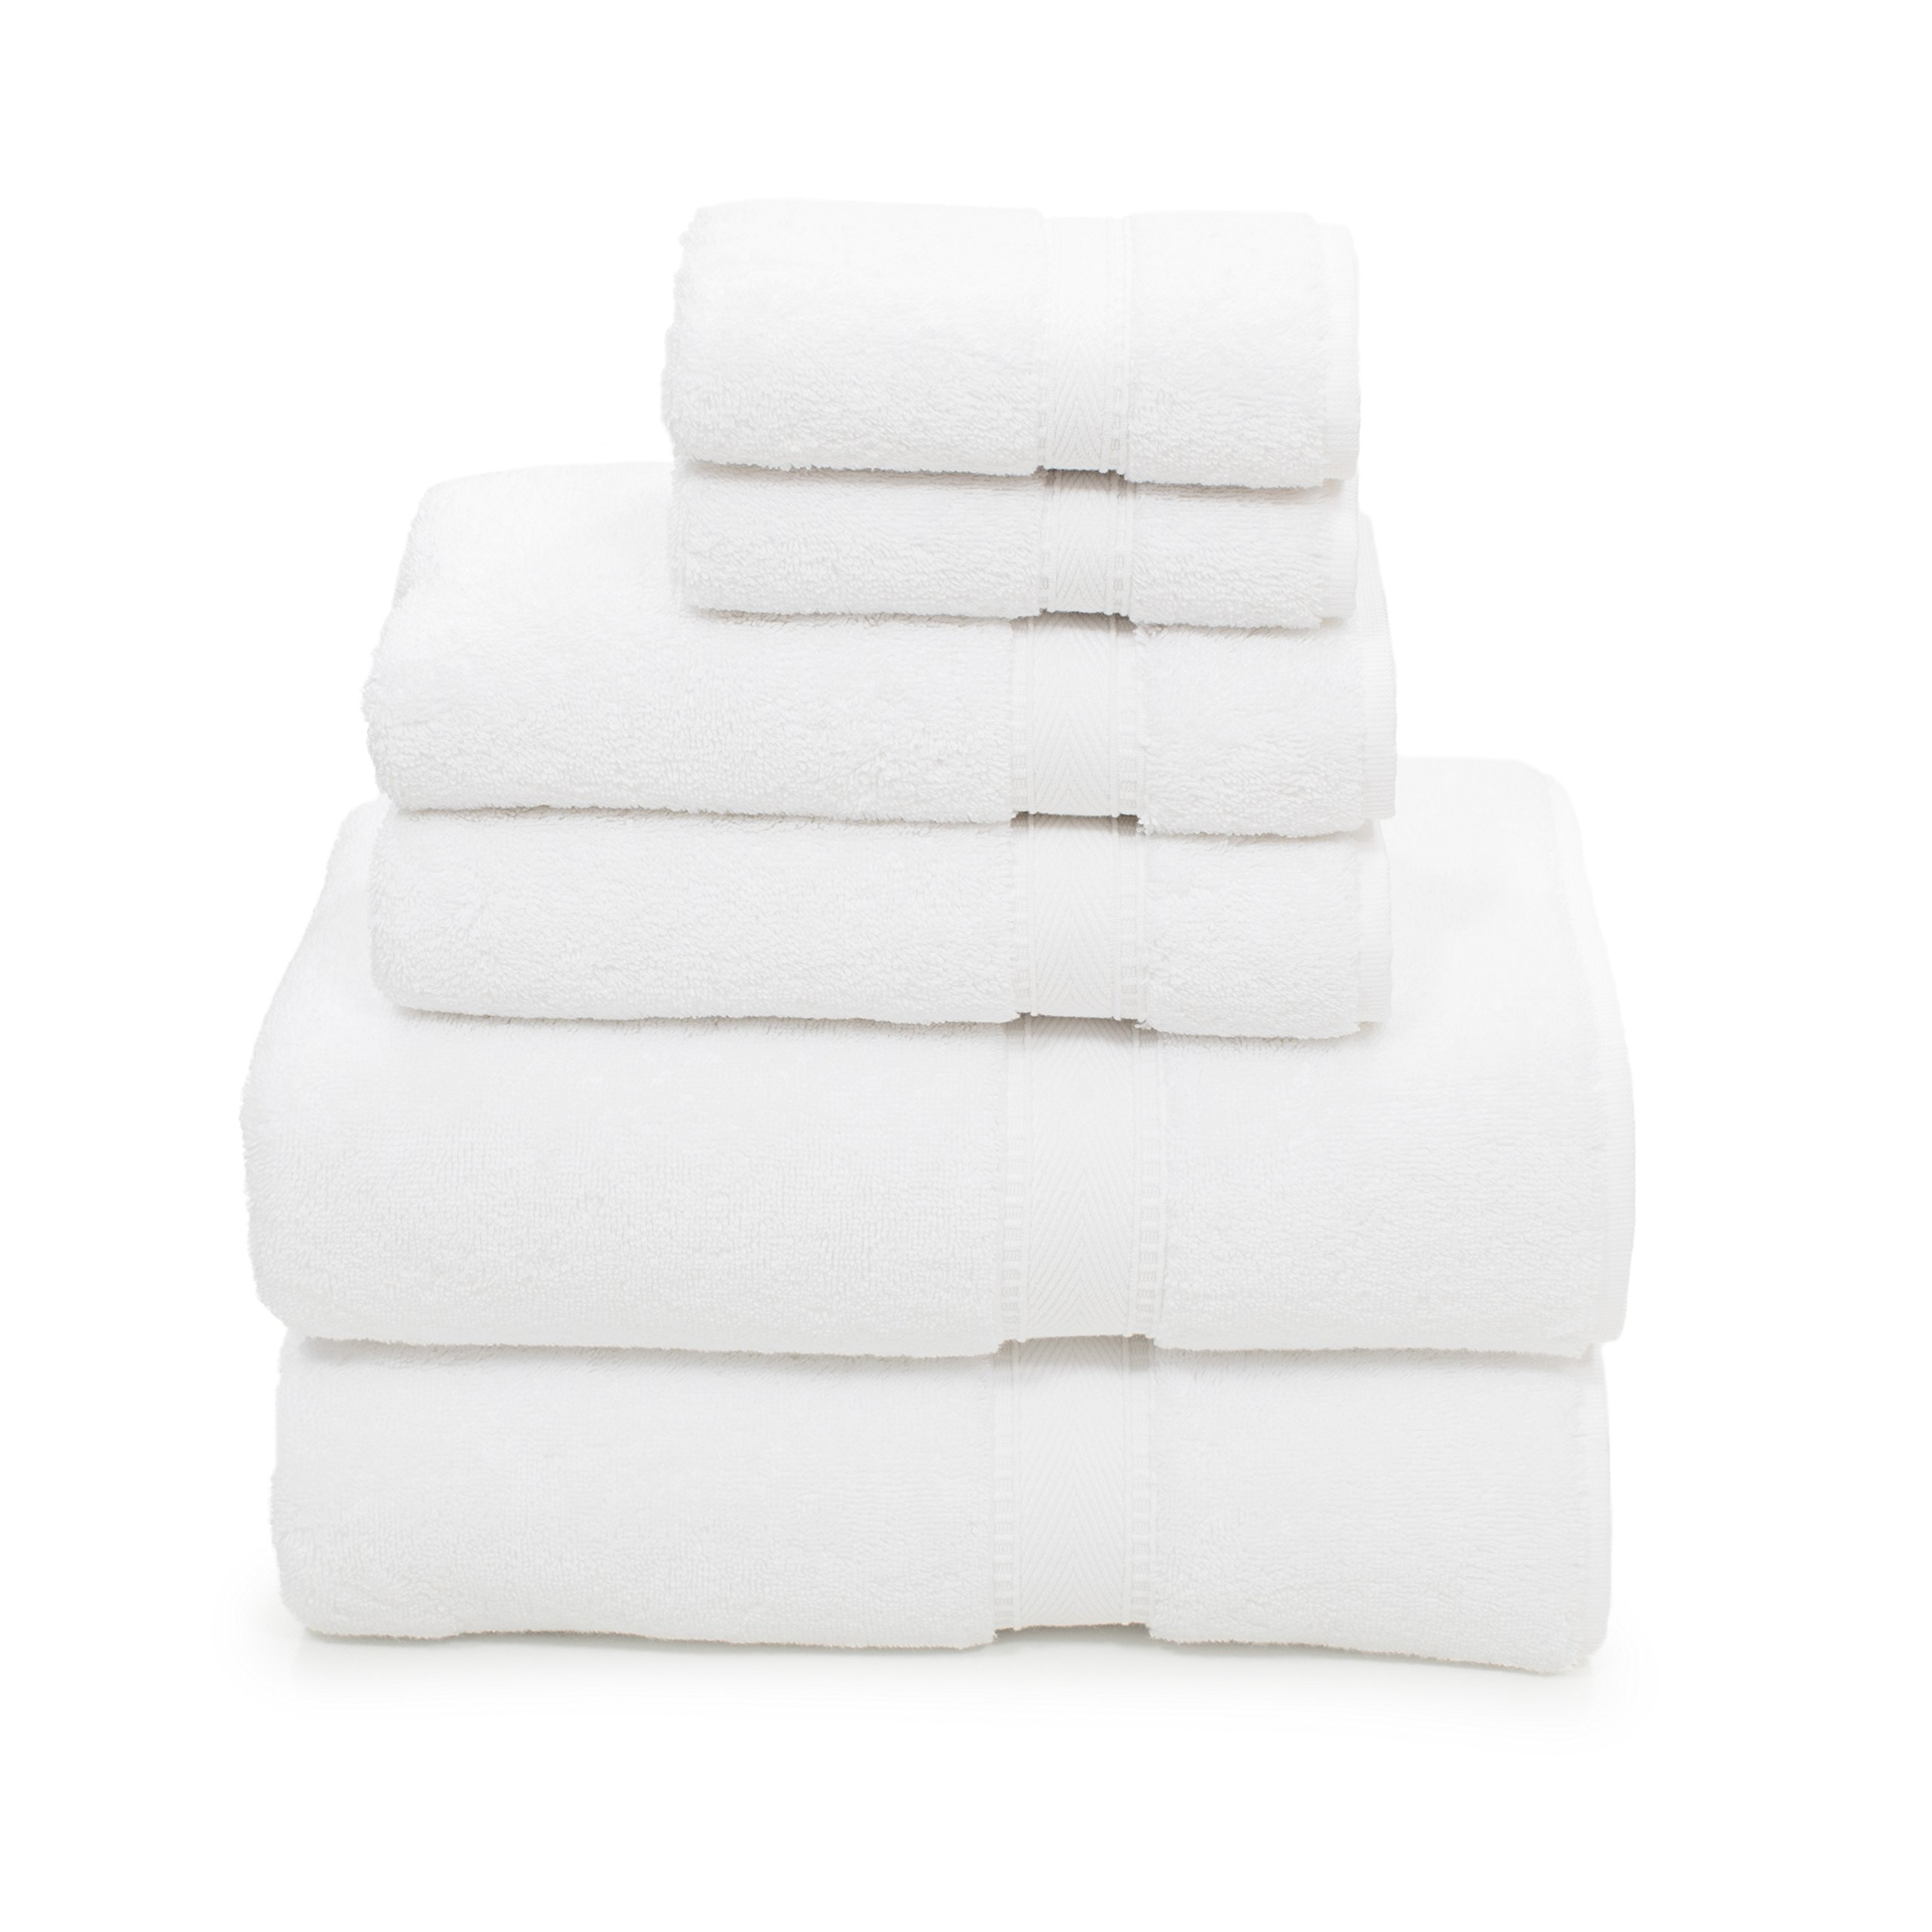 Linum Home Textiles 6 Piece 100% Turkish Cotton Sinemis Terry Bath Towel Set, White